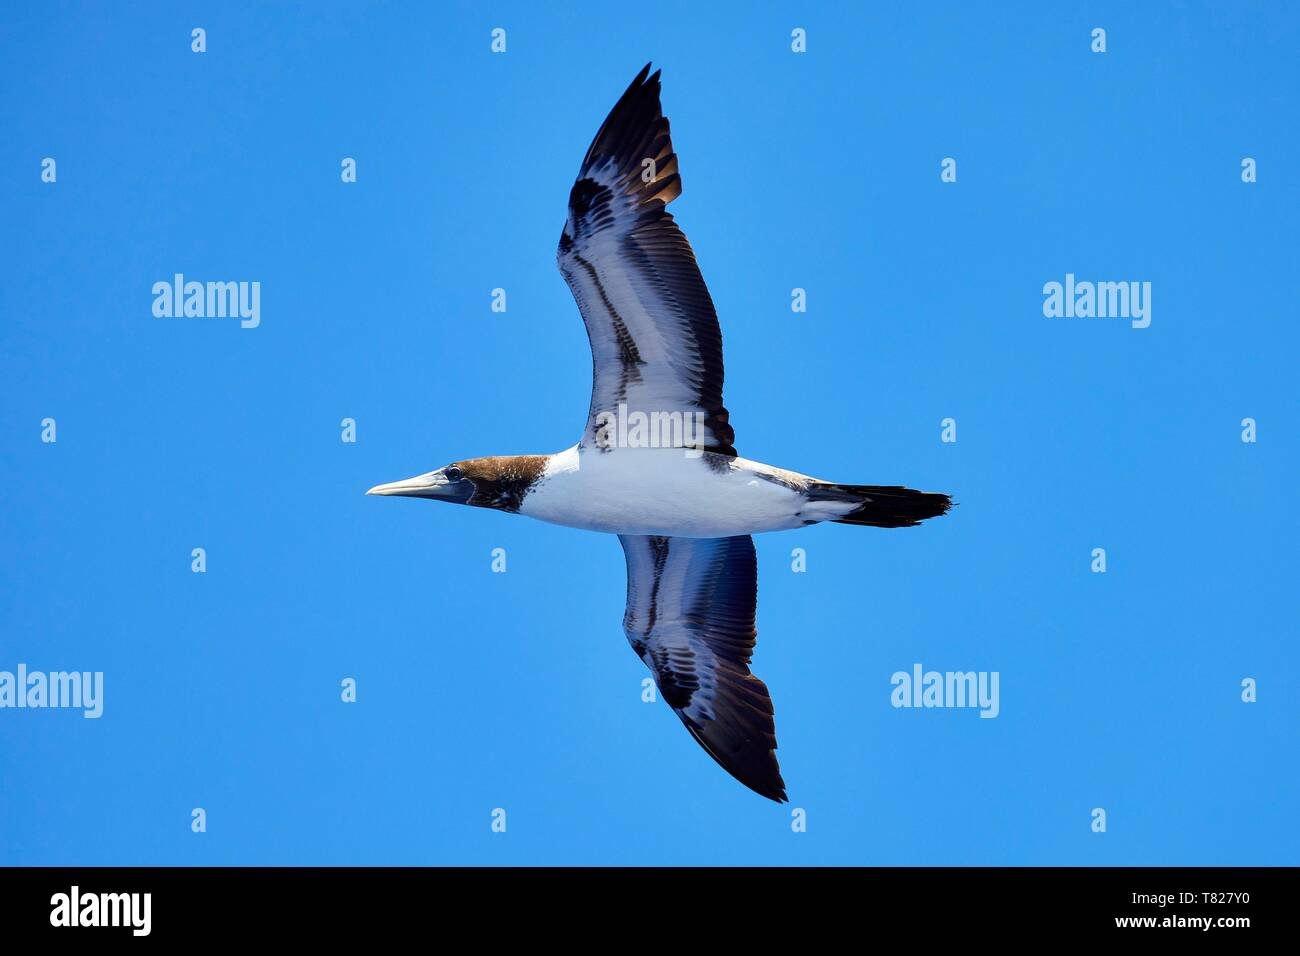 France, Indian Ocean, French Southern and Antarctic Lands, Scattered Islands, Tromelin Island, Masqued Booby (sula dactylatra) - Stock Image